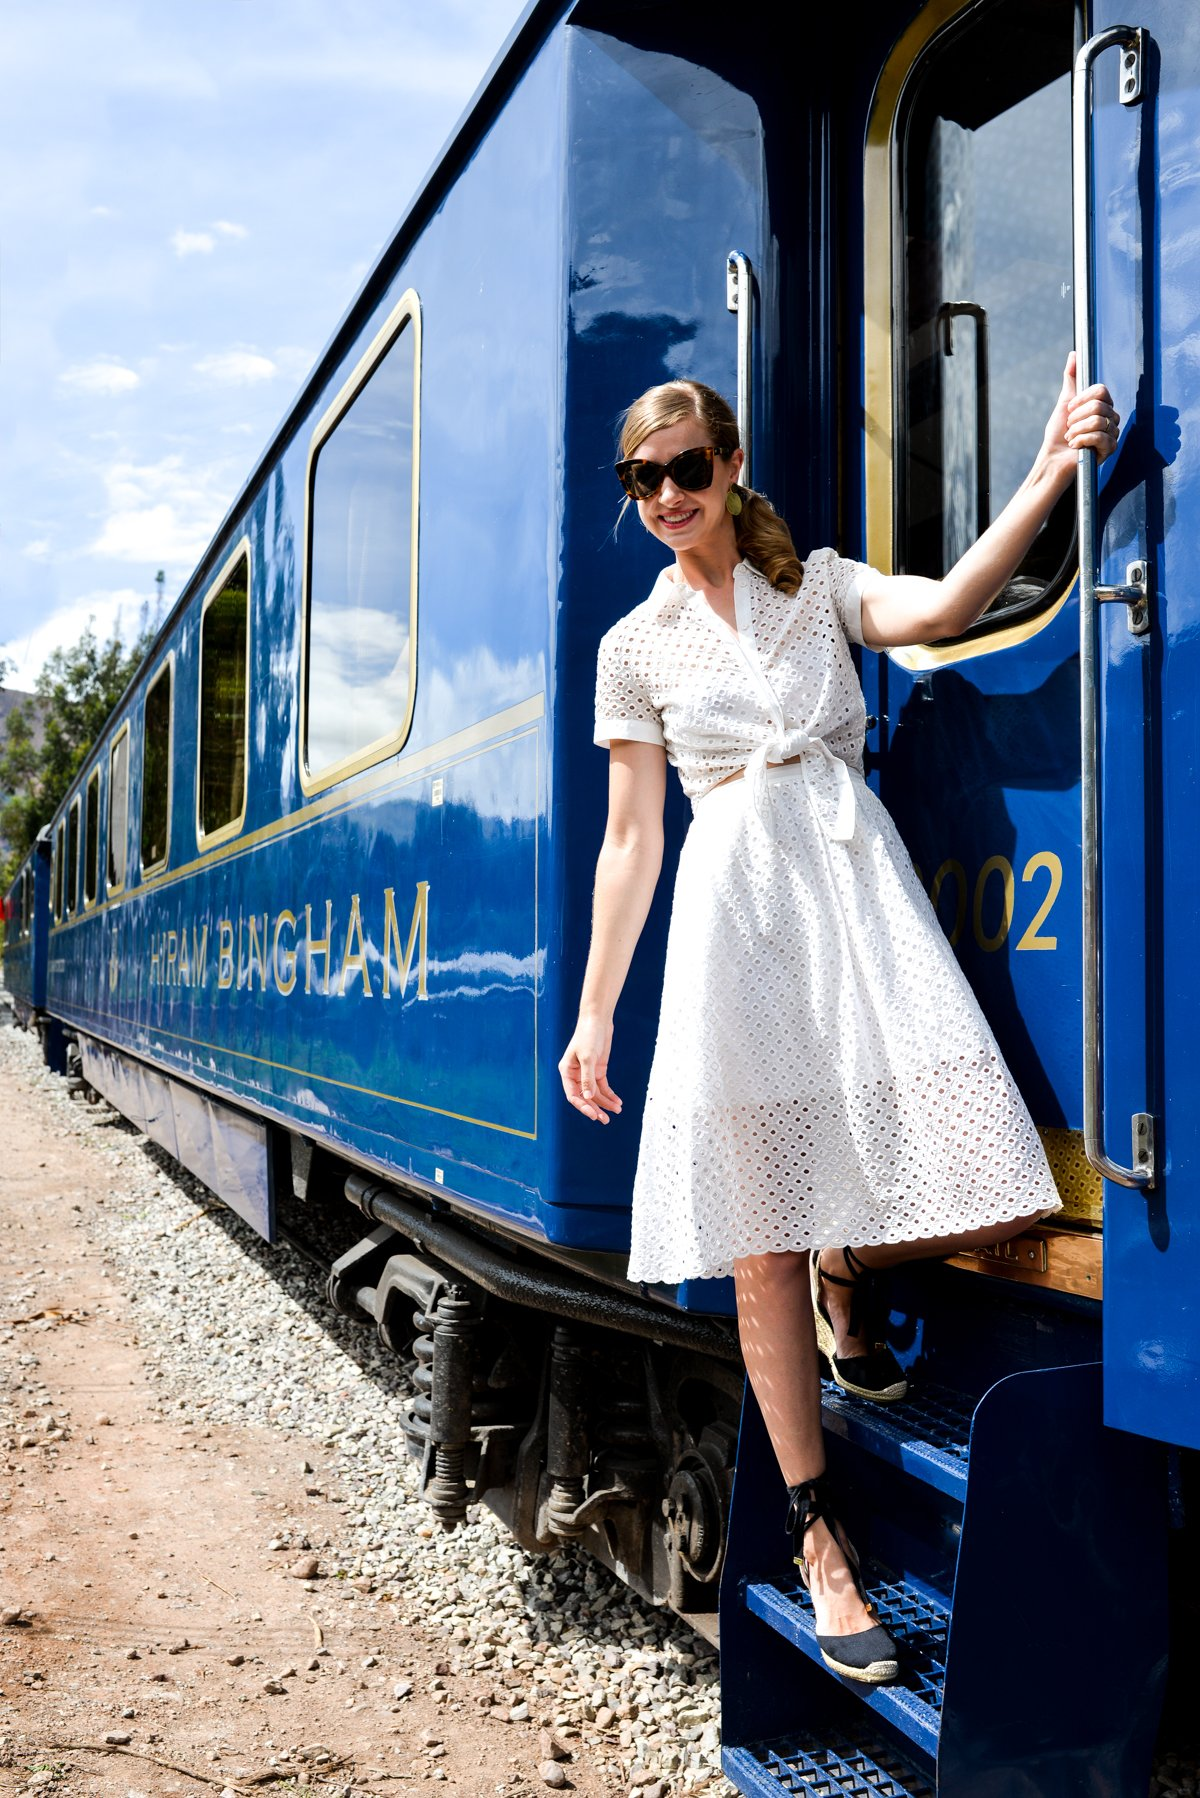 Stacie Flinner x Belmond Hiram Bingham Train-2